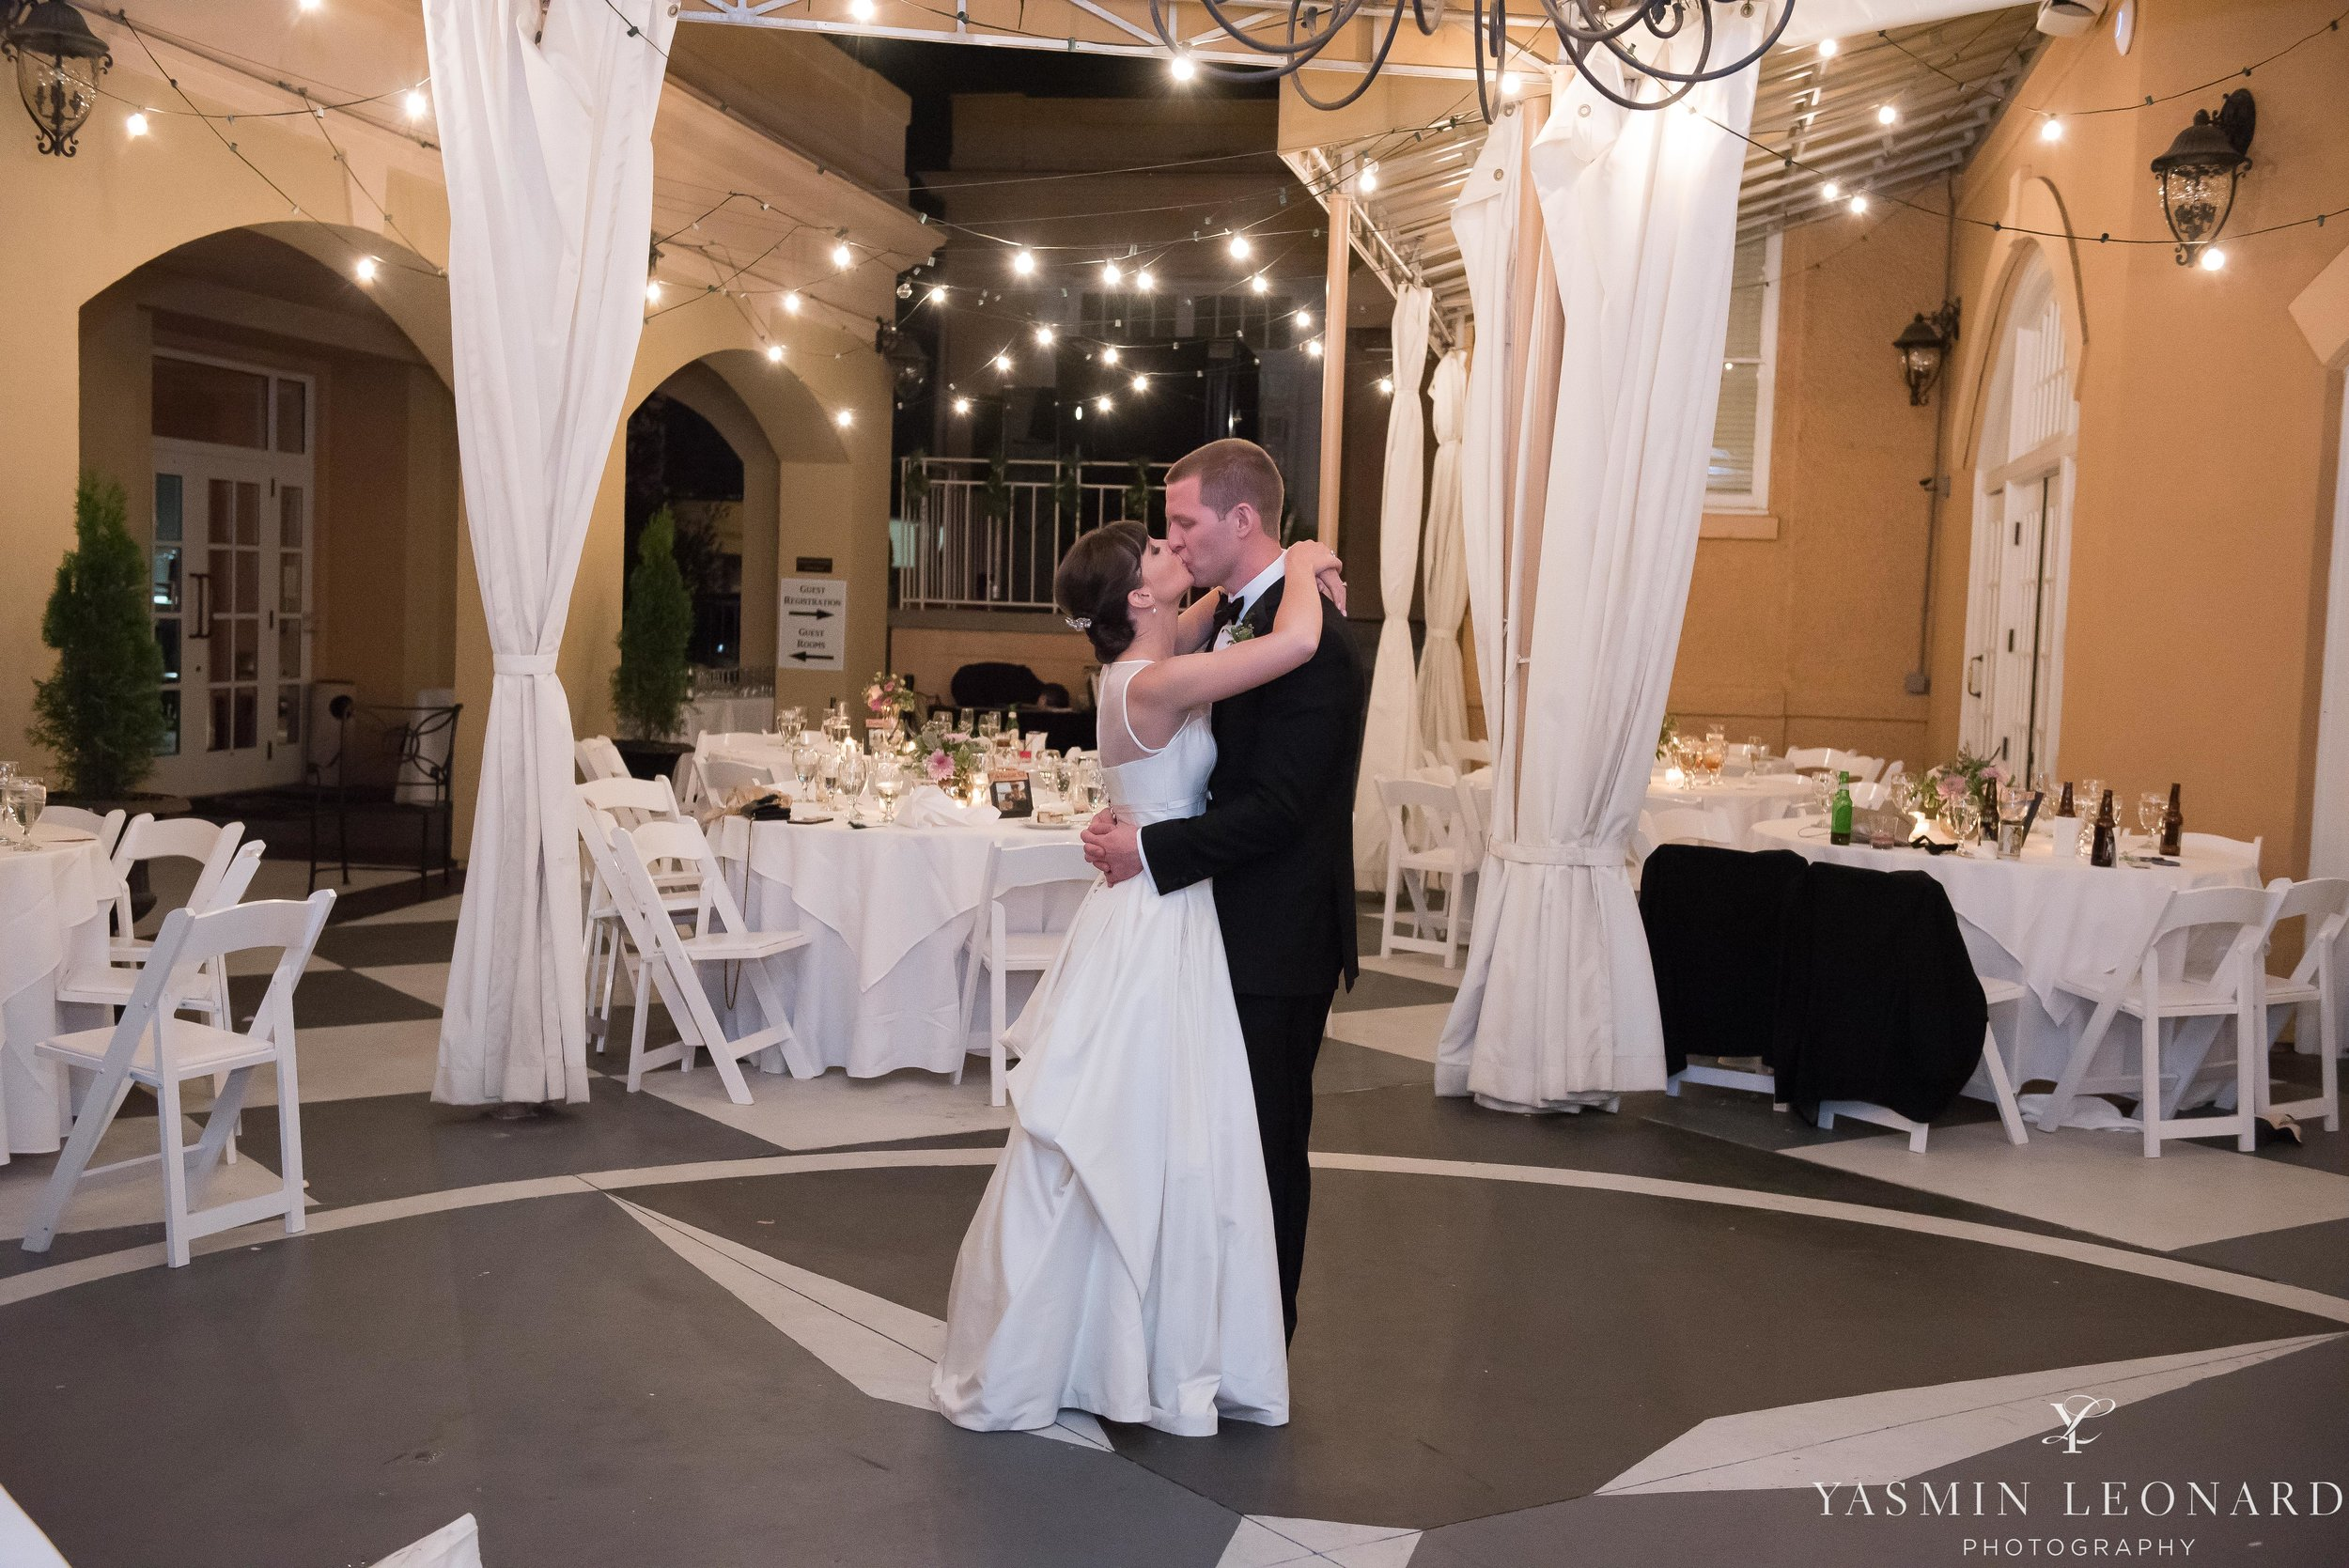 JH ADAMS INN - HIGH POINT UNIVERSITY CHAPEL WEDDING - HPU CHAPEL - HIGH POINT WEDDINGS - NC WEDDING PHOTOGRAPHER - YASMIN LEONARD PHOTOGRAPHY - HIGH POINT NC - HIGH POINT WEDDINGS -77.jpg